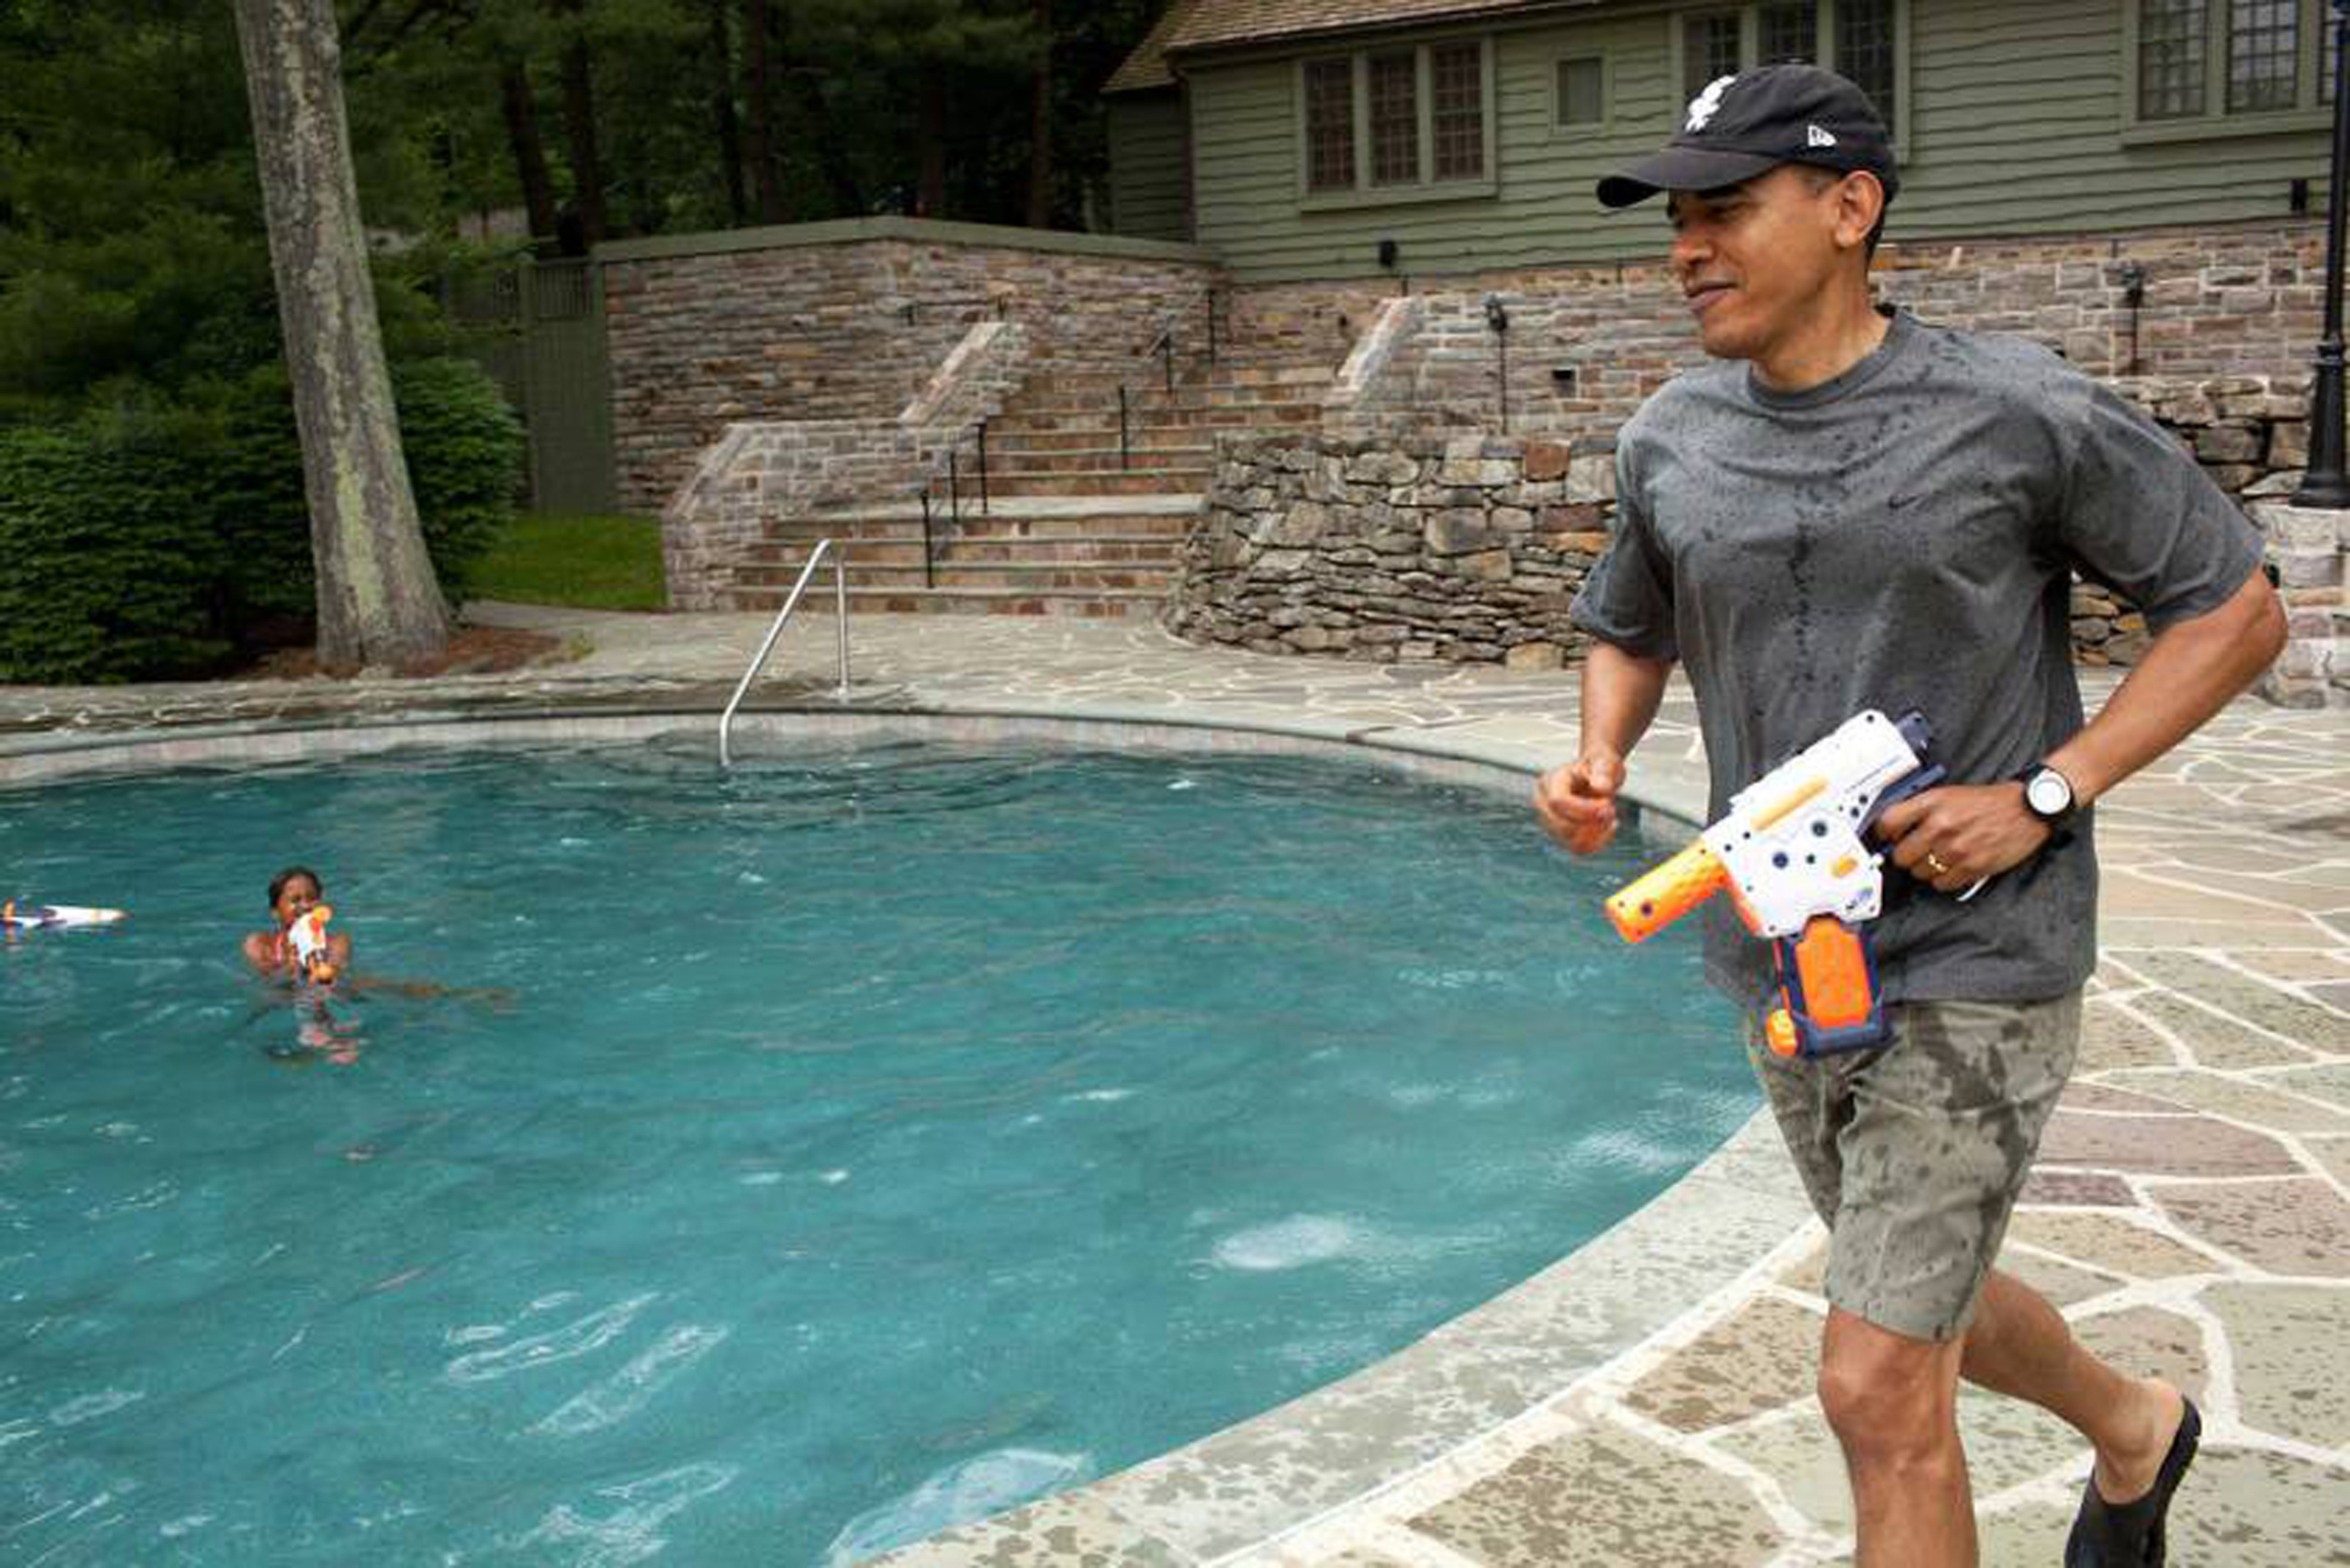 President Obama joins in a water gun fight with daughter Sasha during her 10th birthday celebration at Camp David, Md., June 11, 2011.